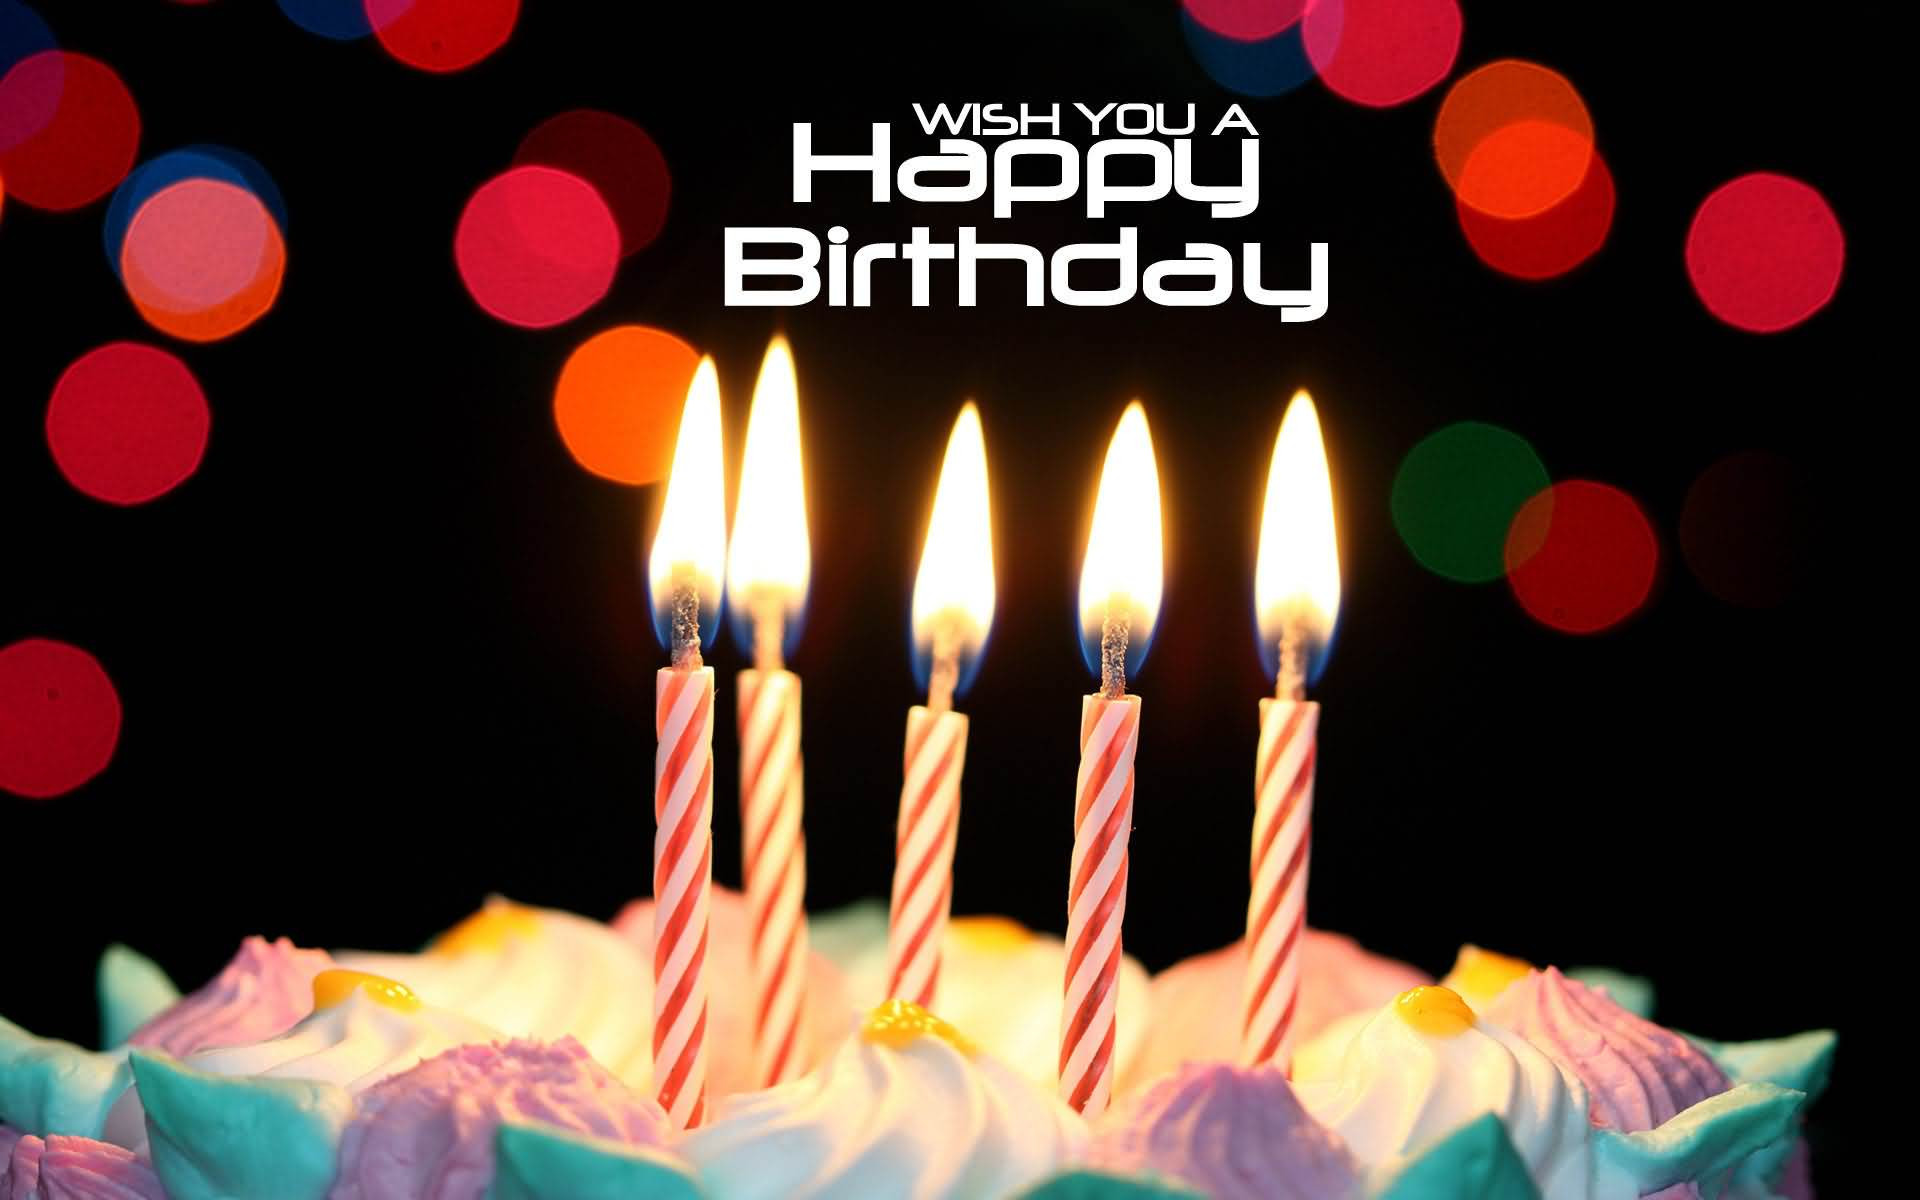 Best ideas about Wish You Happy Birthday . Save or Pin 20 Awesome Neighbor Birthday Wishes Now.